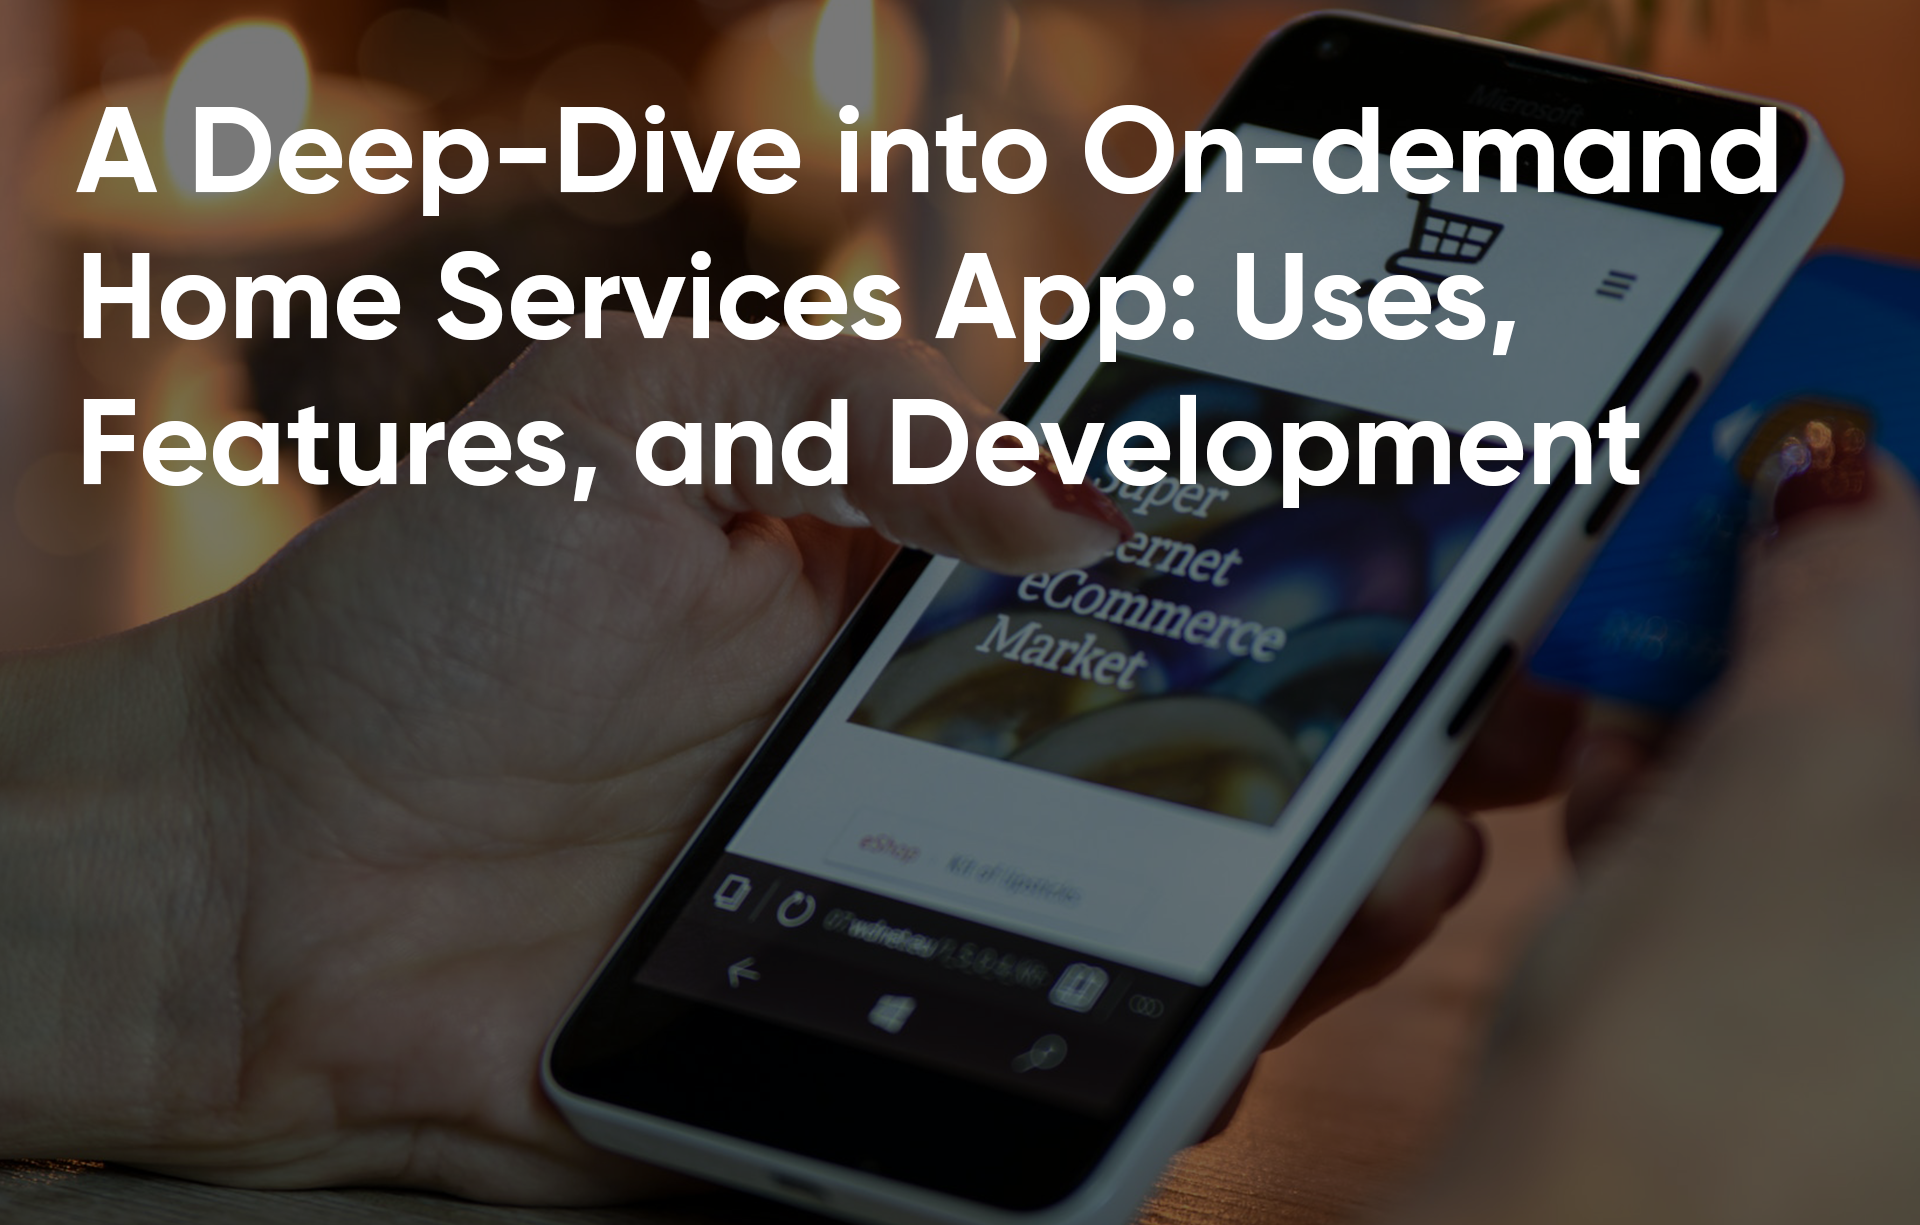 A-Deep-Dive-into-On-demand-Home-Services-App-Uses-Features-and-Development